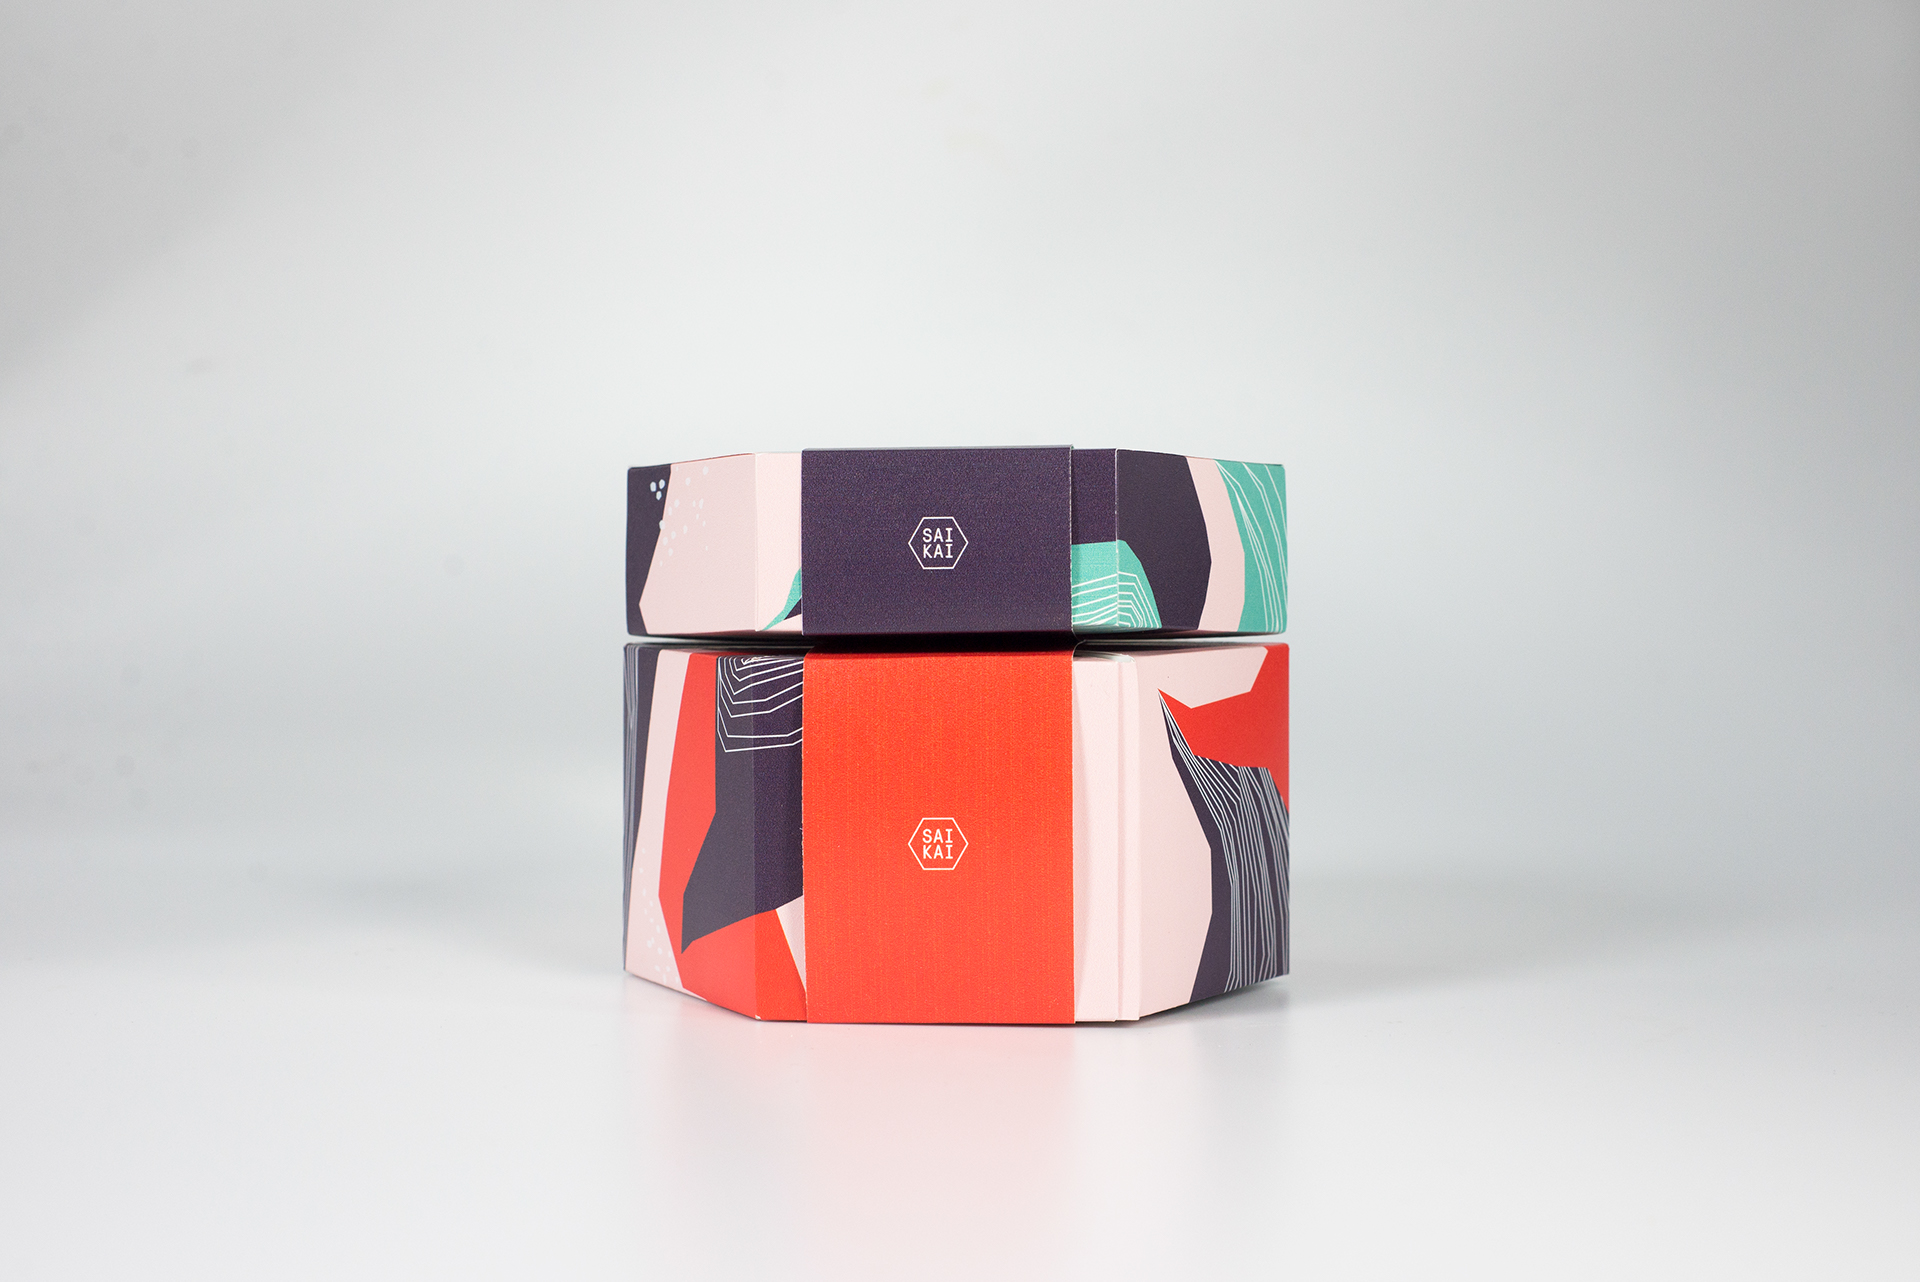 rgb_creative_Saikai Packaging_6